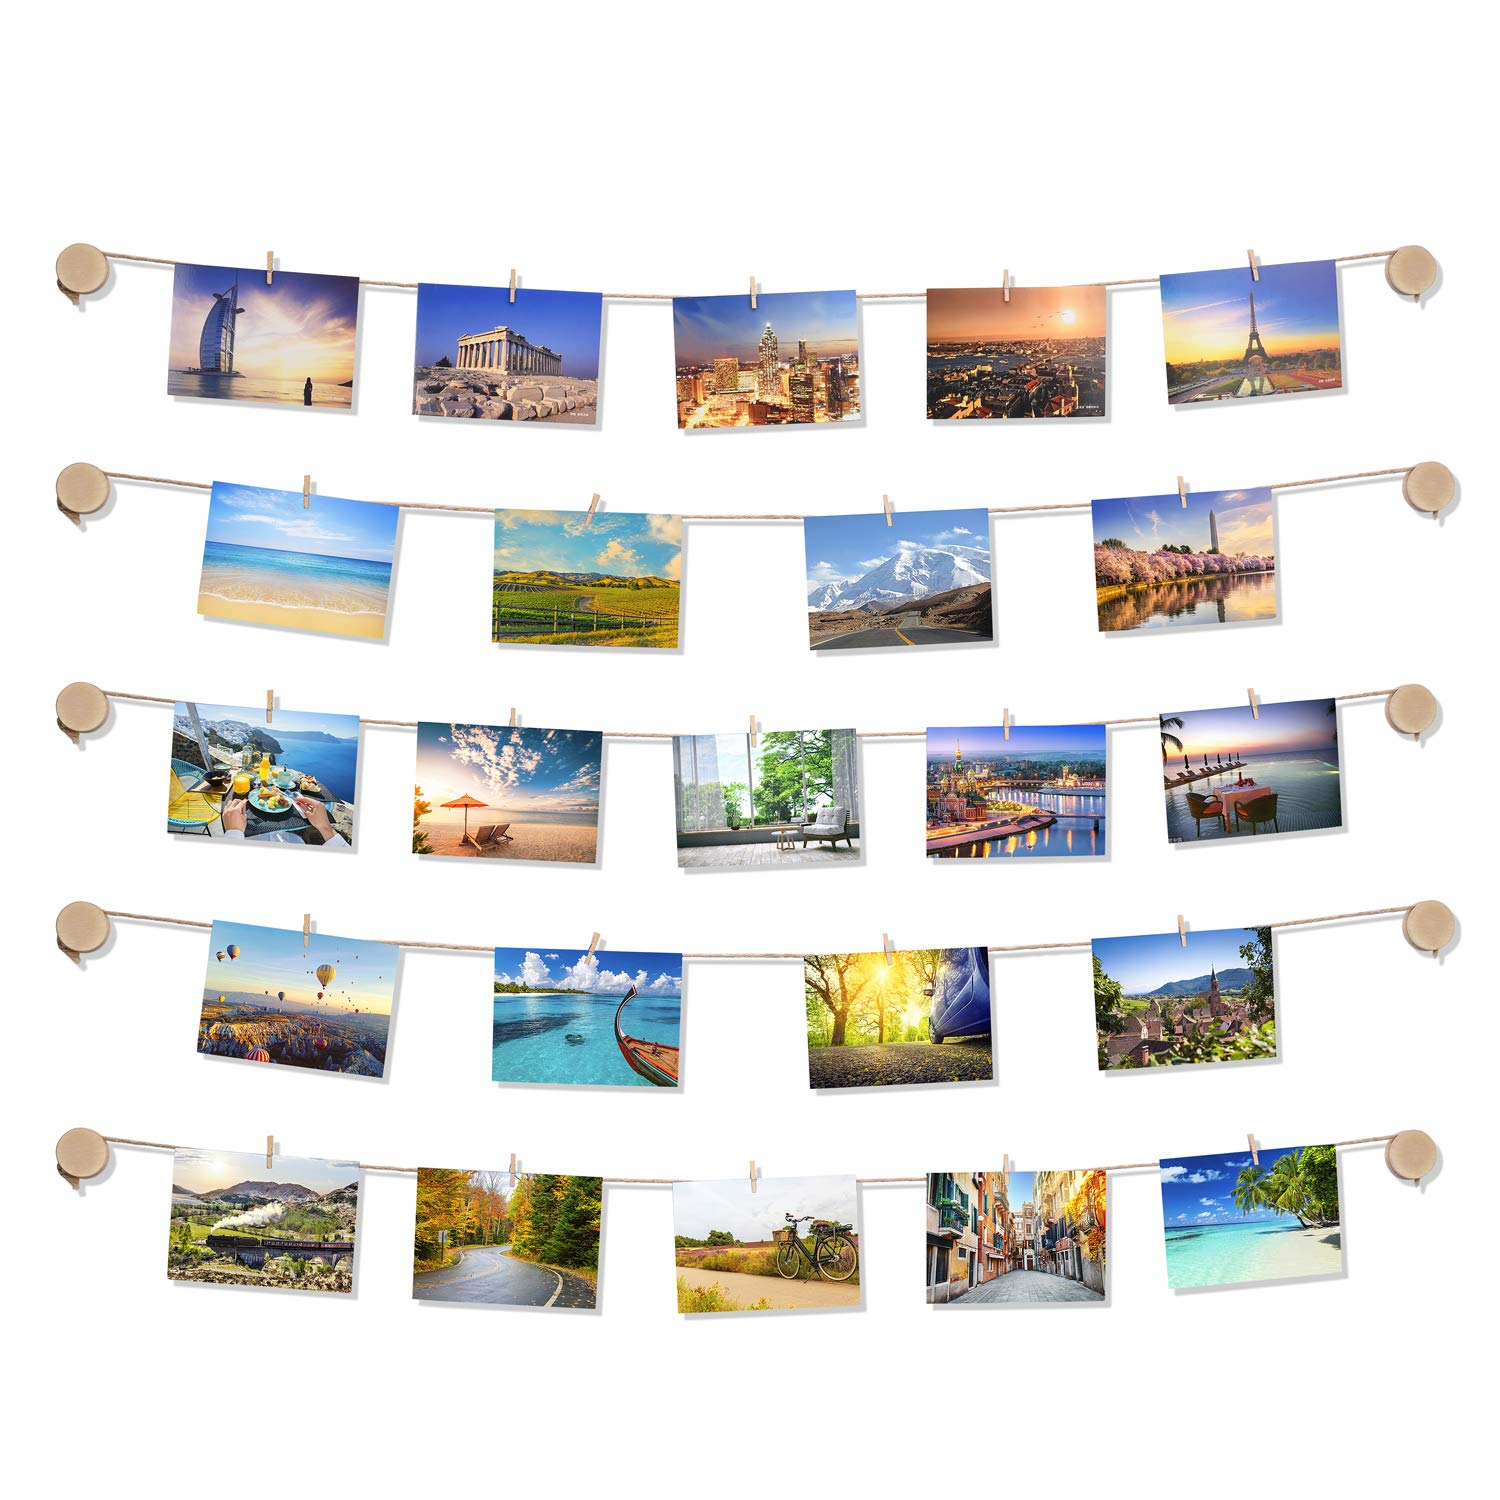 TWING Clip Photo Display - Easy Install Self Adhesive 3M Hanging Photo Display Picture Frame Collage - 10 Wooden Button Holders for Wall Decor Hanging Photos